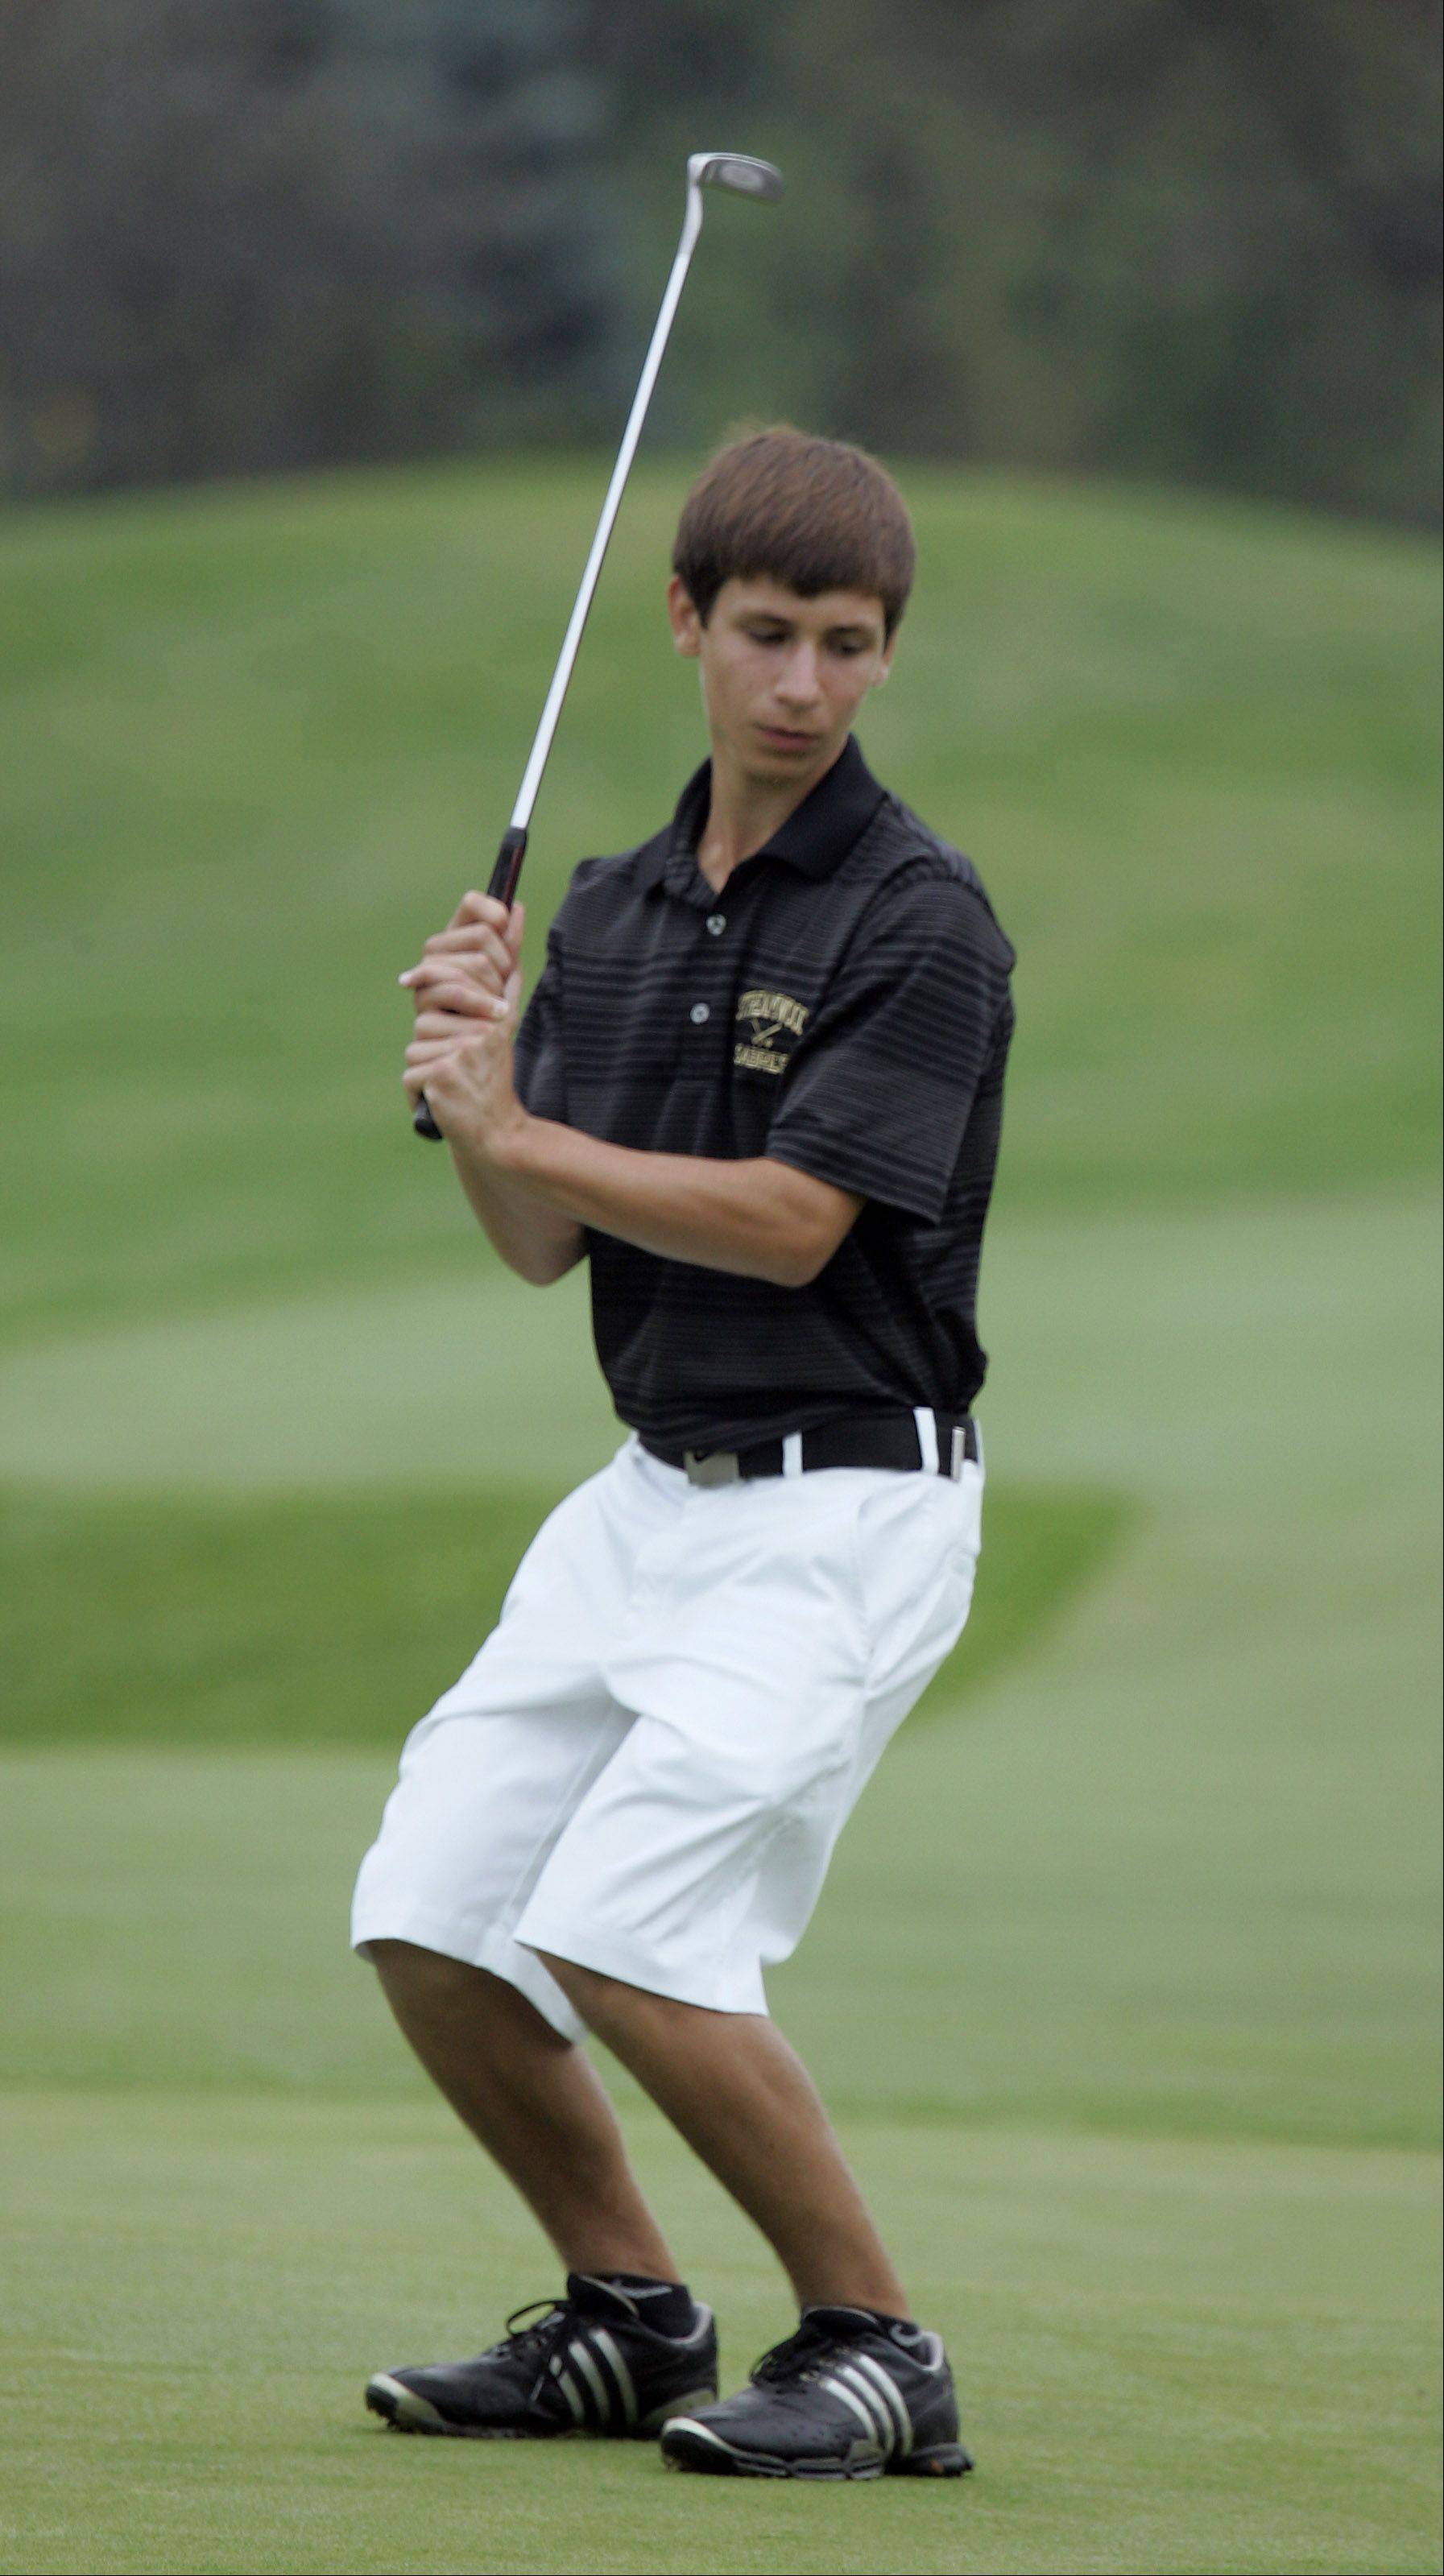 Kaneland's Luke Kreiter, reacts to his putt on the third green during the Geneva boys golf invite Thursday at Mill Creek Golf Club in Geneva.